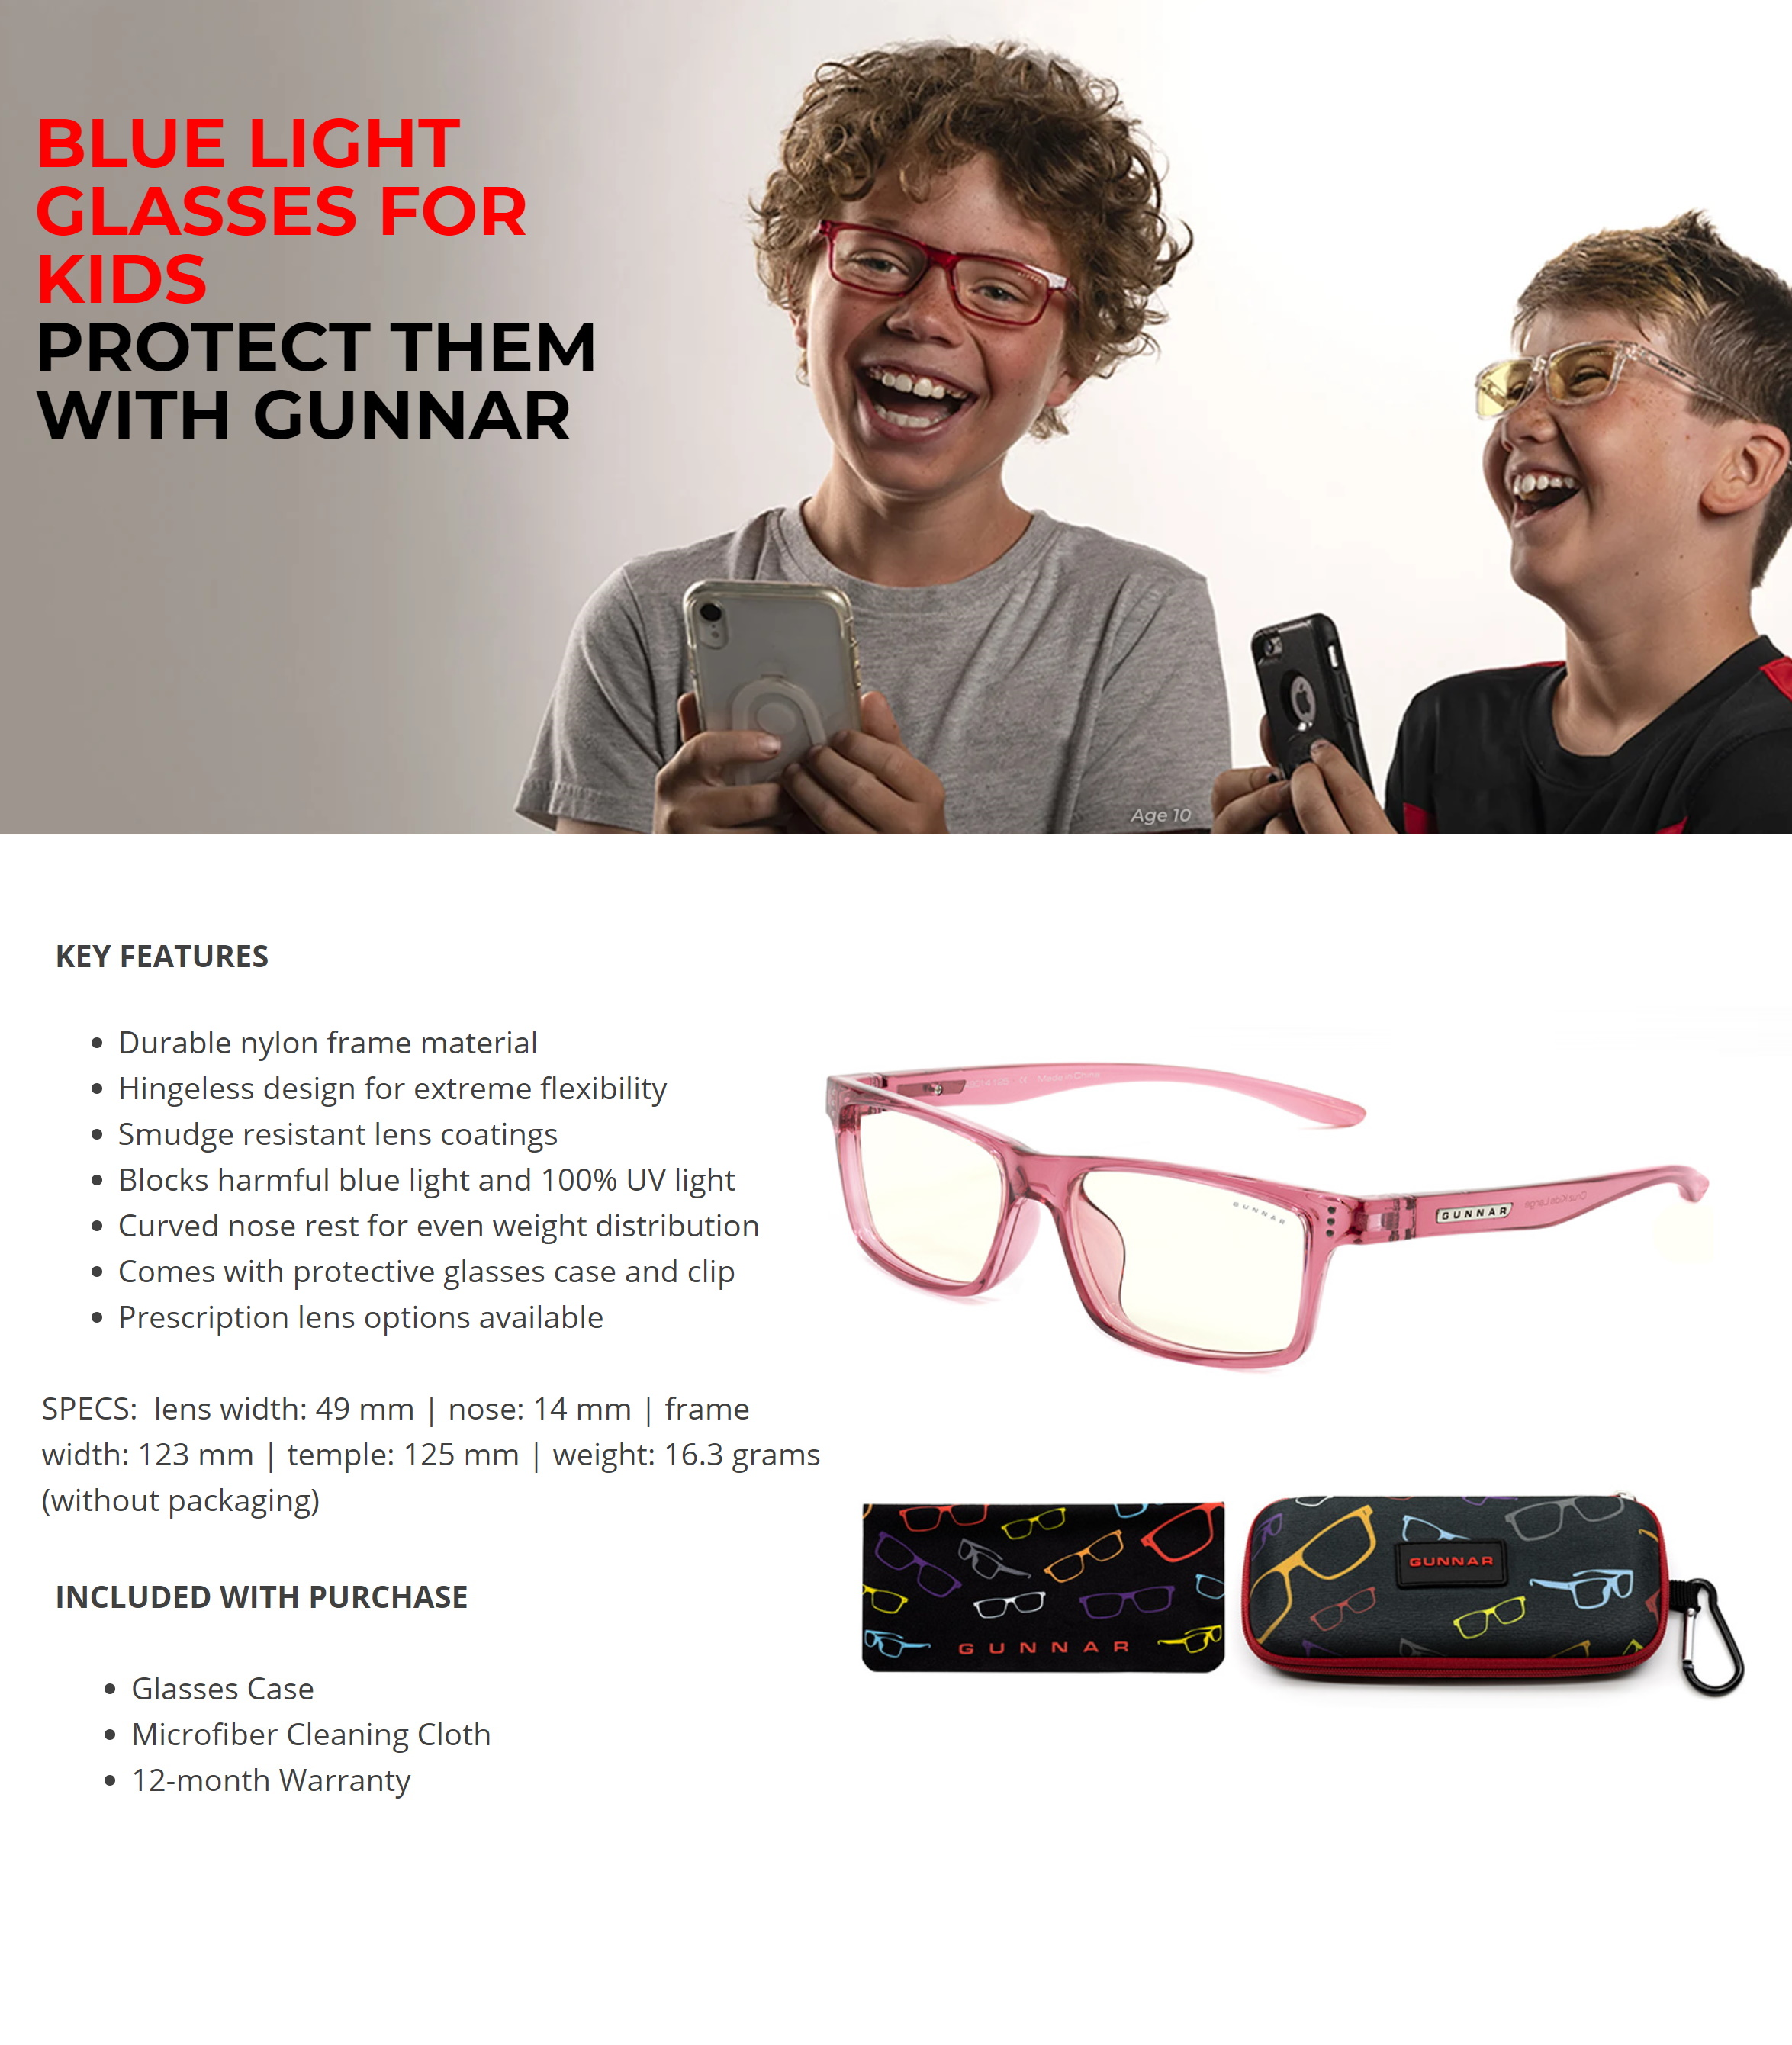 A large marketing image providing additional information about the product Gunnar Cruz Kids Clear Pink Indoor Digital Eyewear Large - Additional alt info not provided